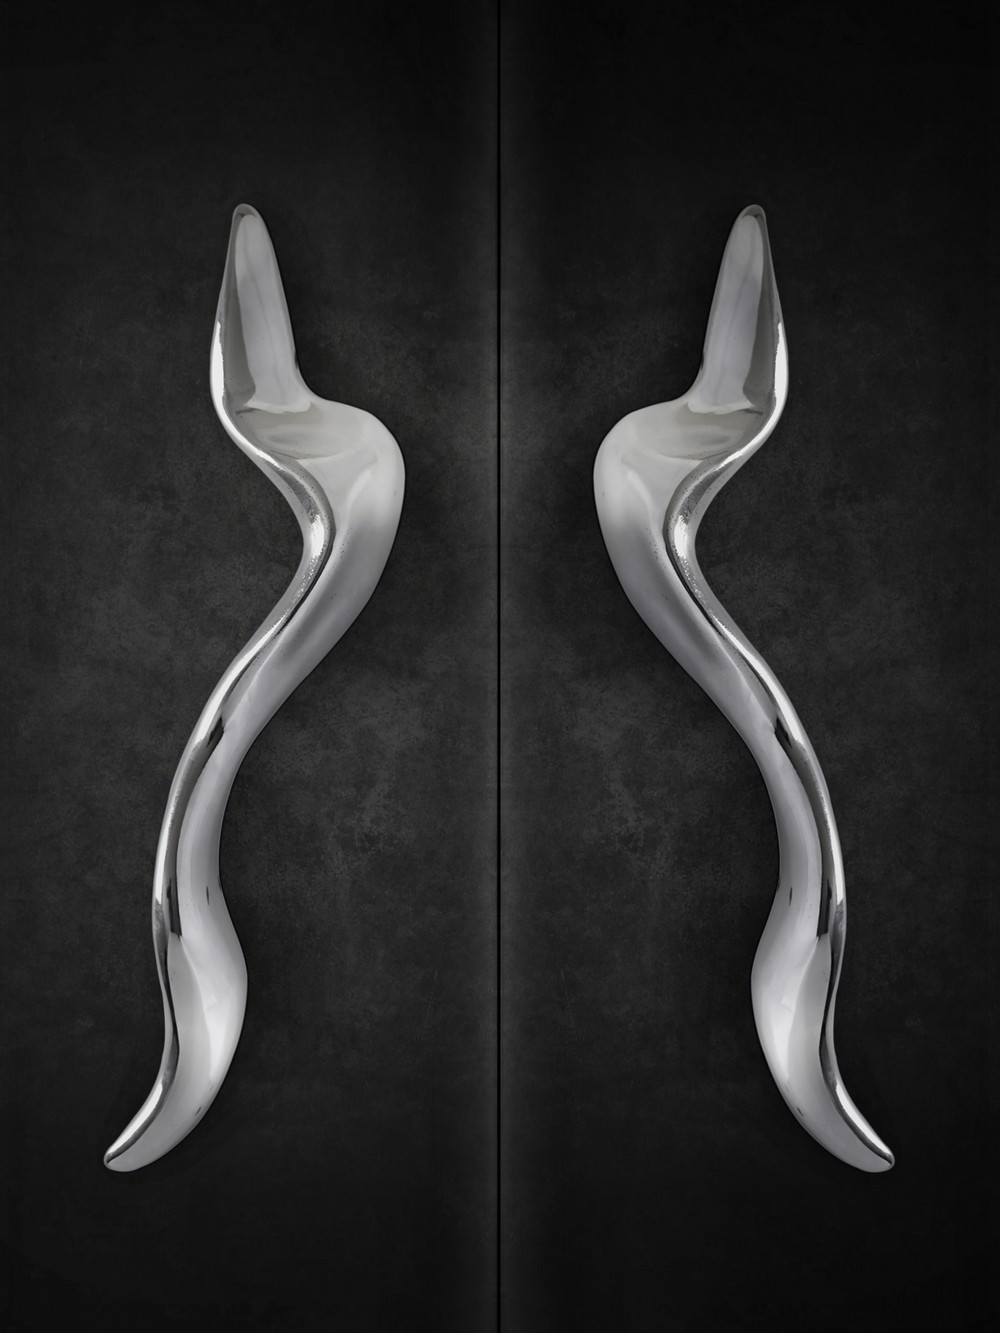 Decorative Hardware Inspirations in Trendy Hues of Ultimate Gray 5 ultimate gray Decorative Hardware Inspirations in Trendy Hues of Ultimate Gray Decorative Hardware Inspirations in Trendy Hues of Ultimate Gray 5